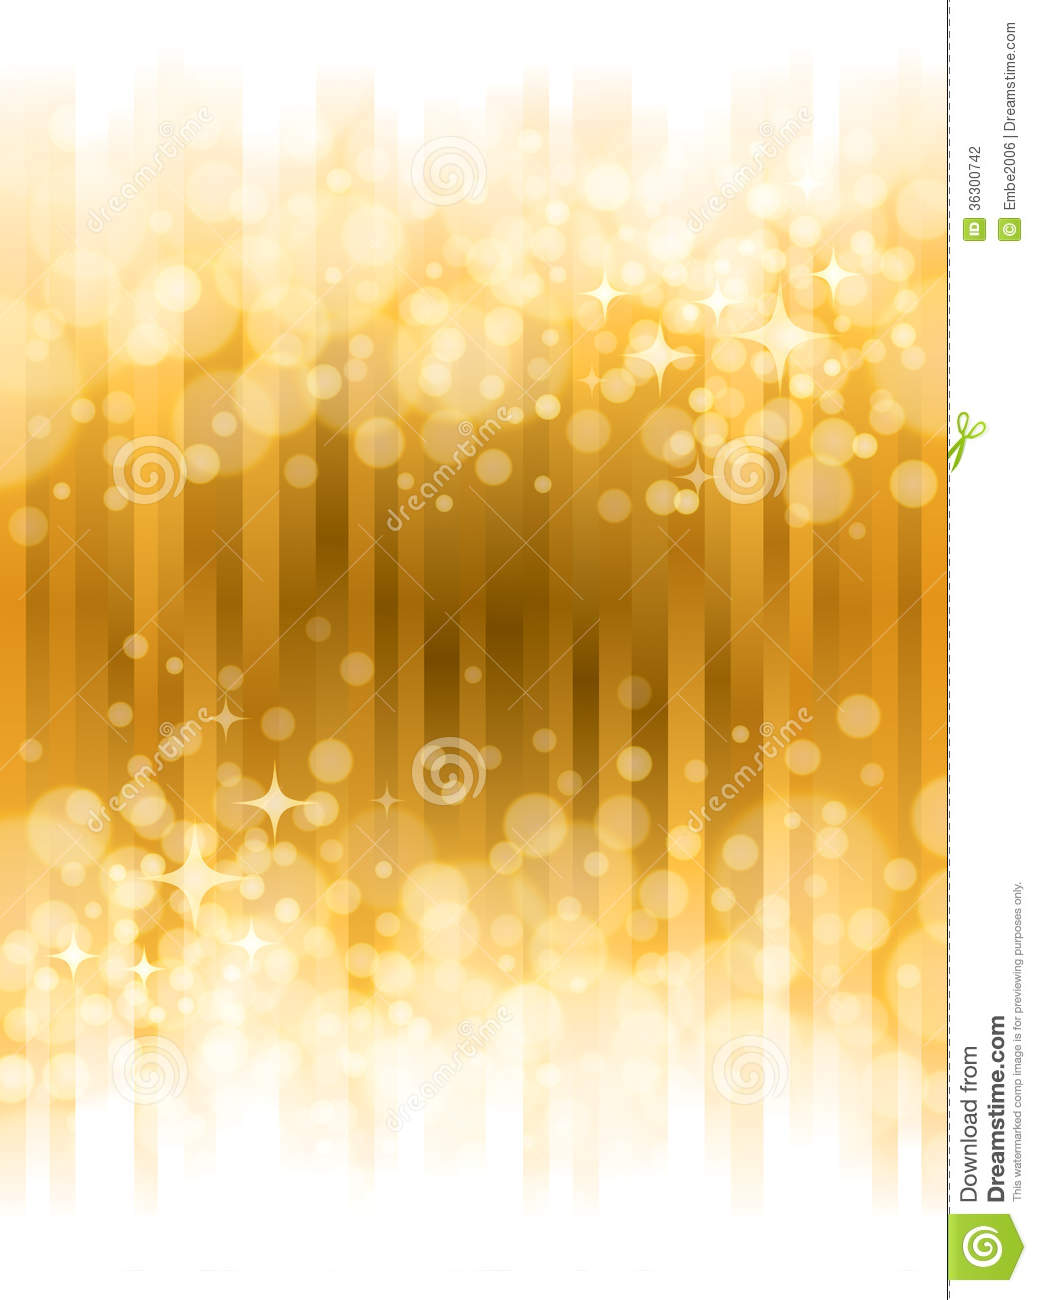 bright gold background with shining lights and stars.